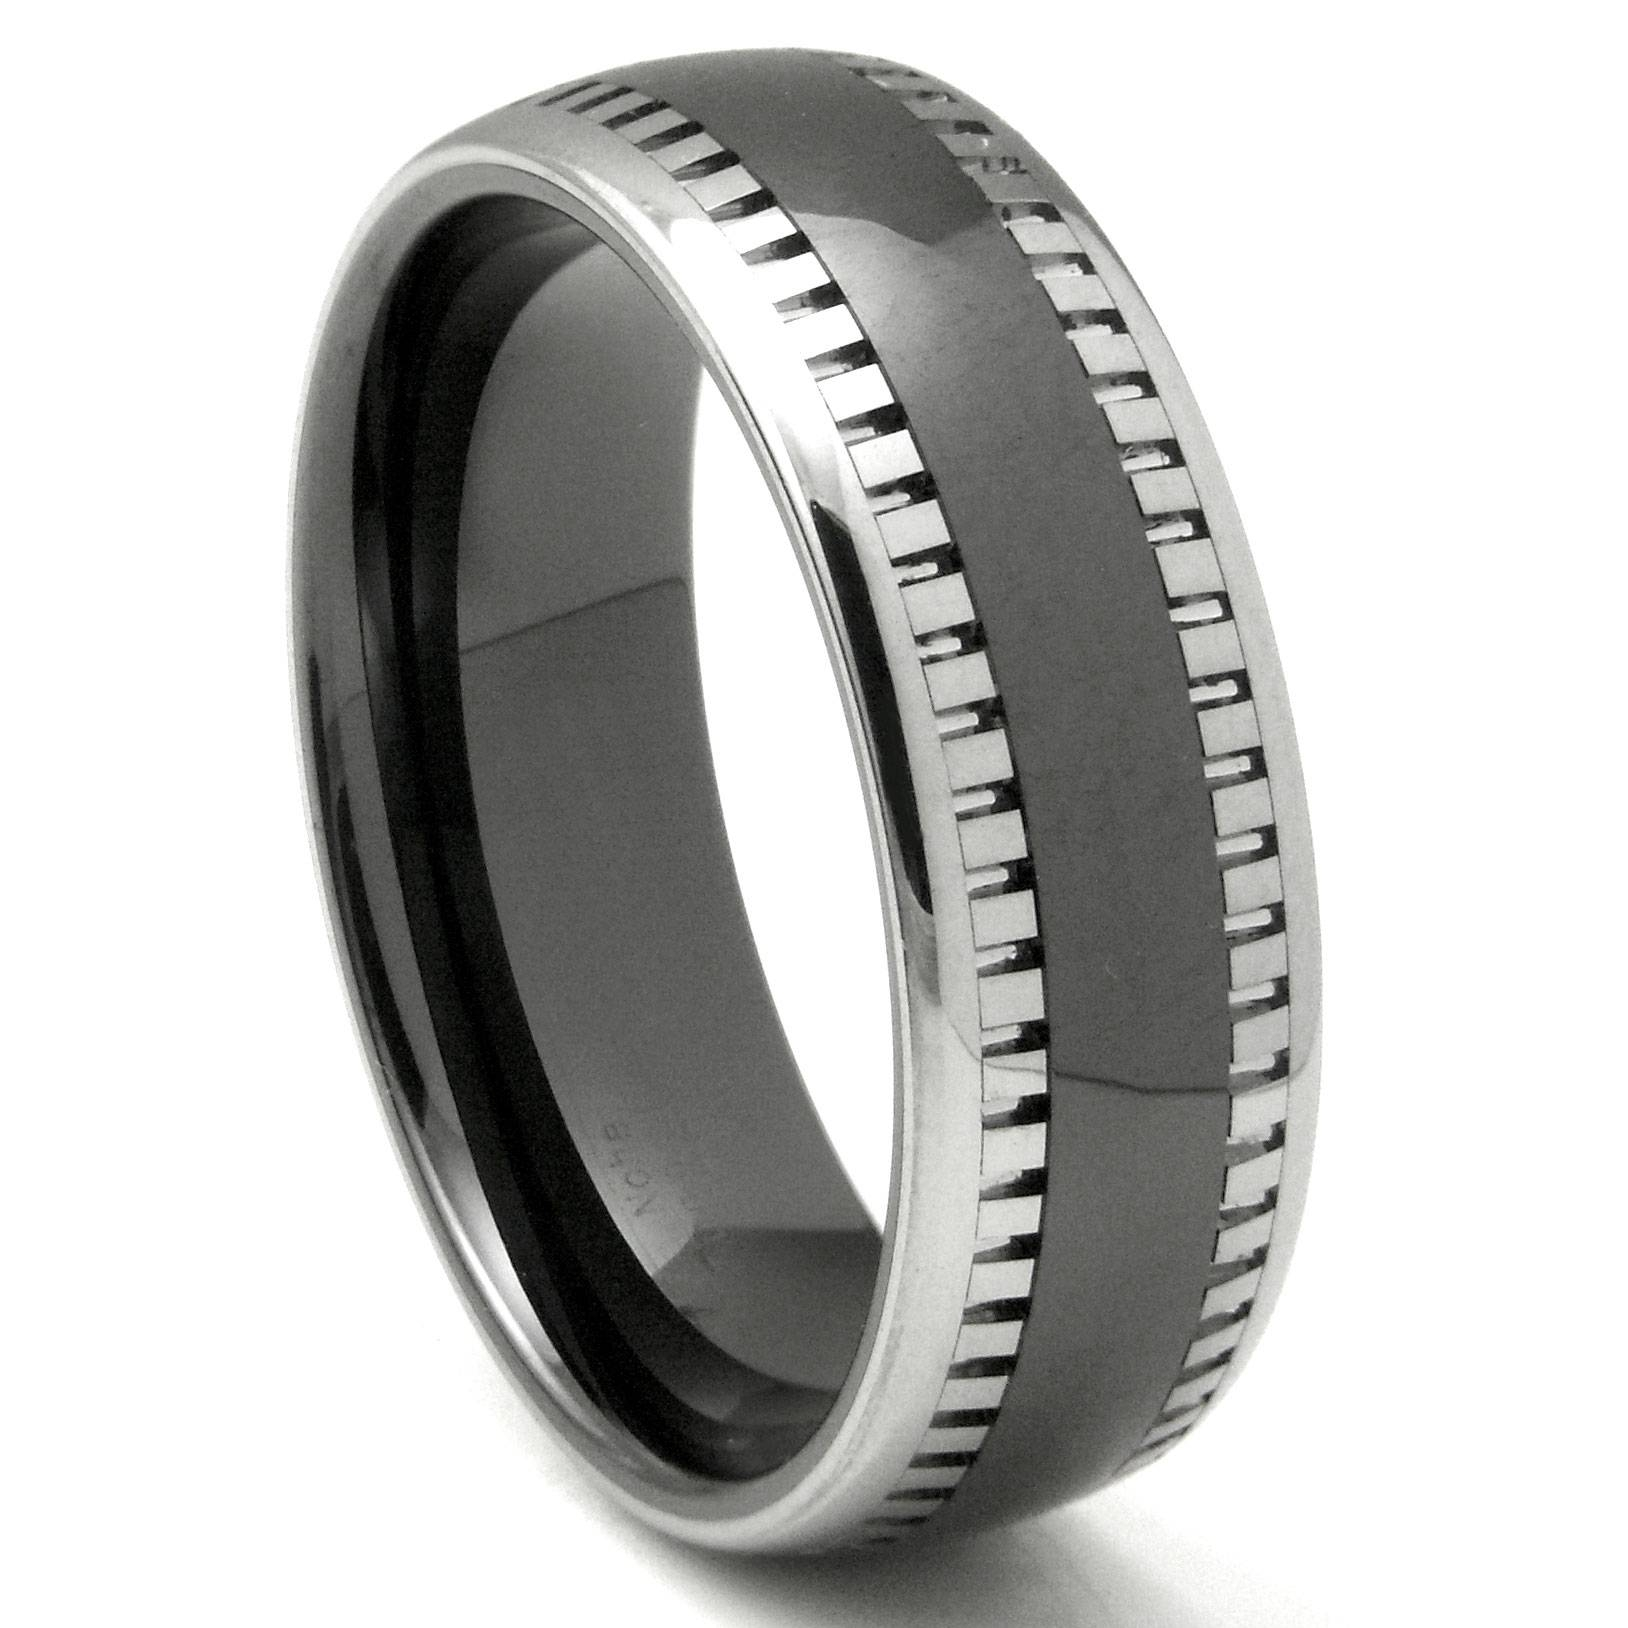 2Nd Generation Tungsten Carbide Two Tone Milgrain Dome Wedding With Regard To Dark Metal Mens Wedding Bands (View 3 of 15)